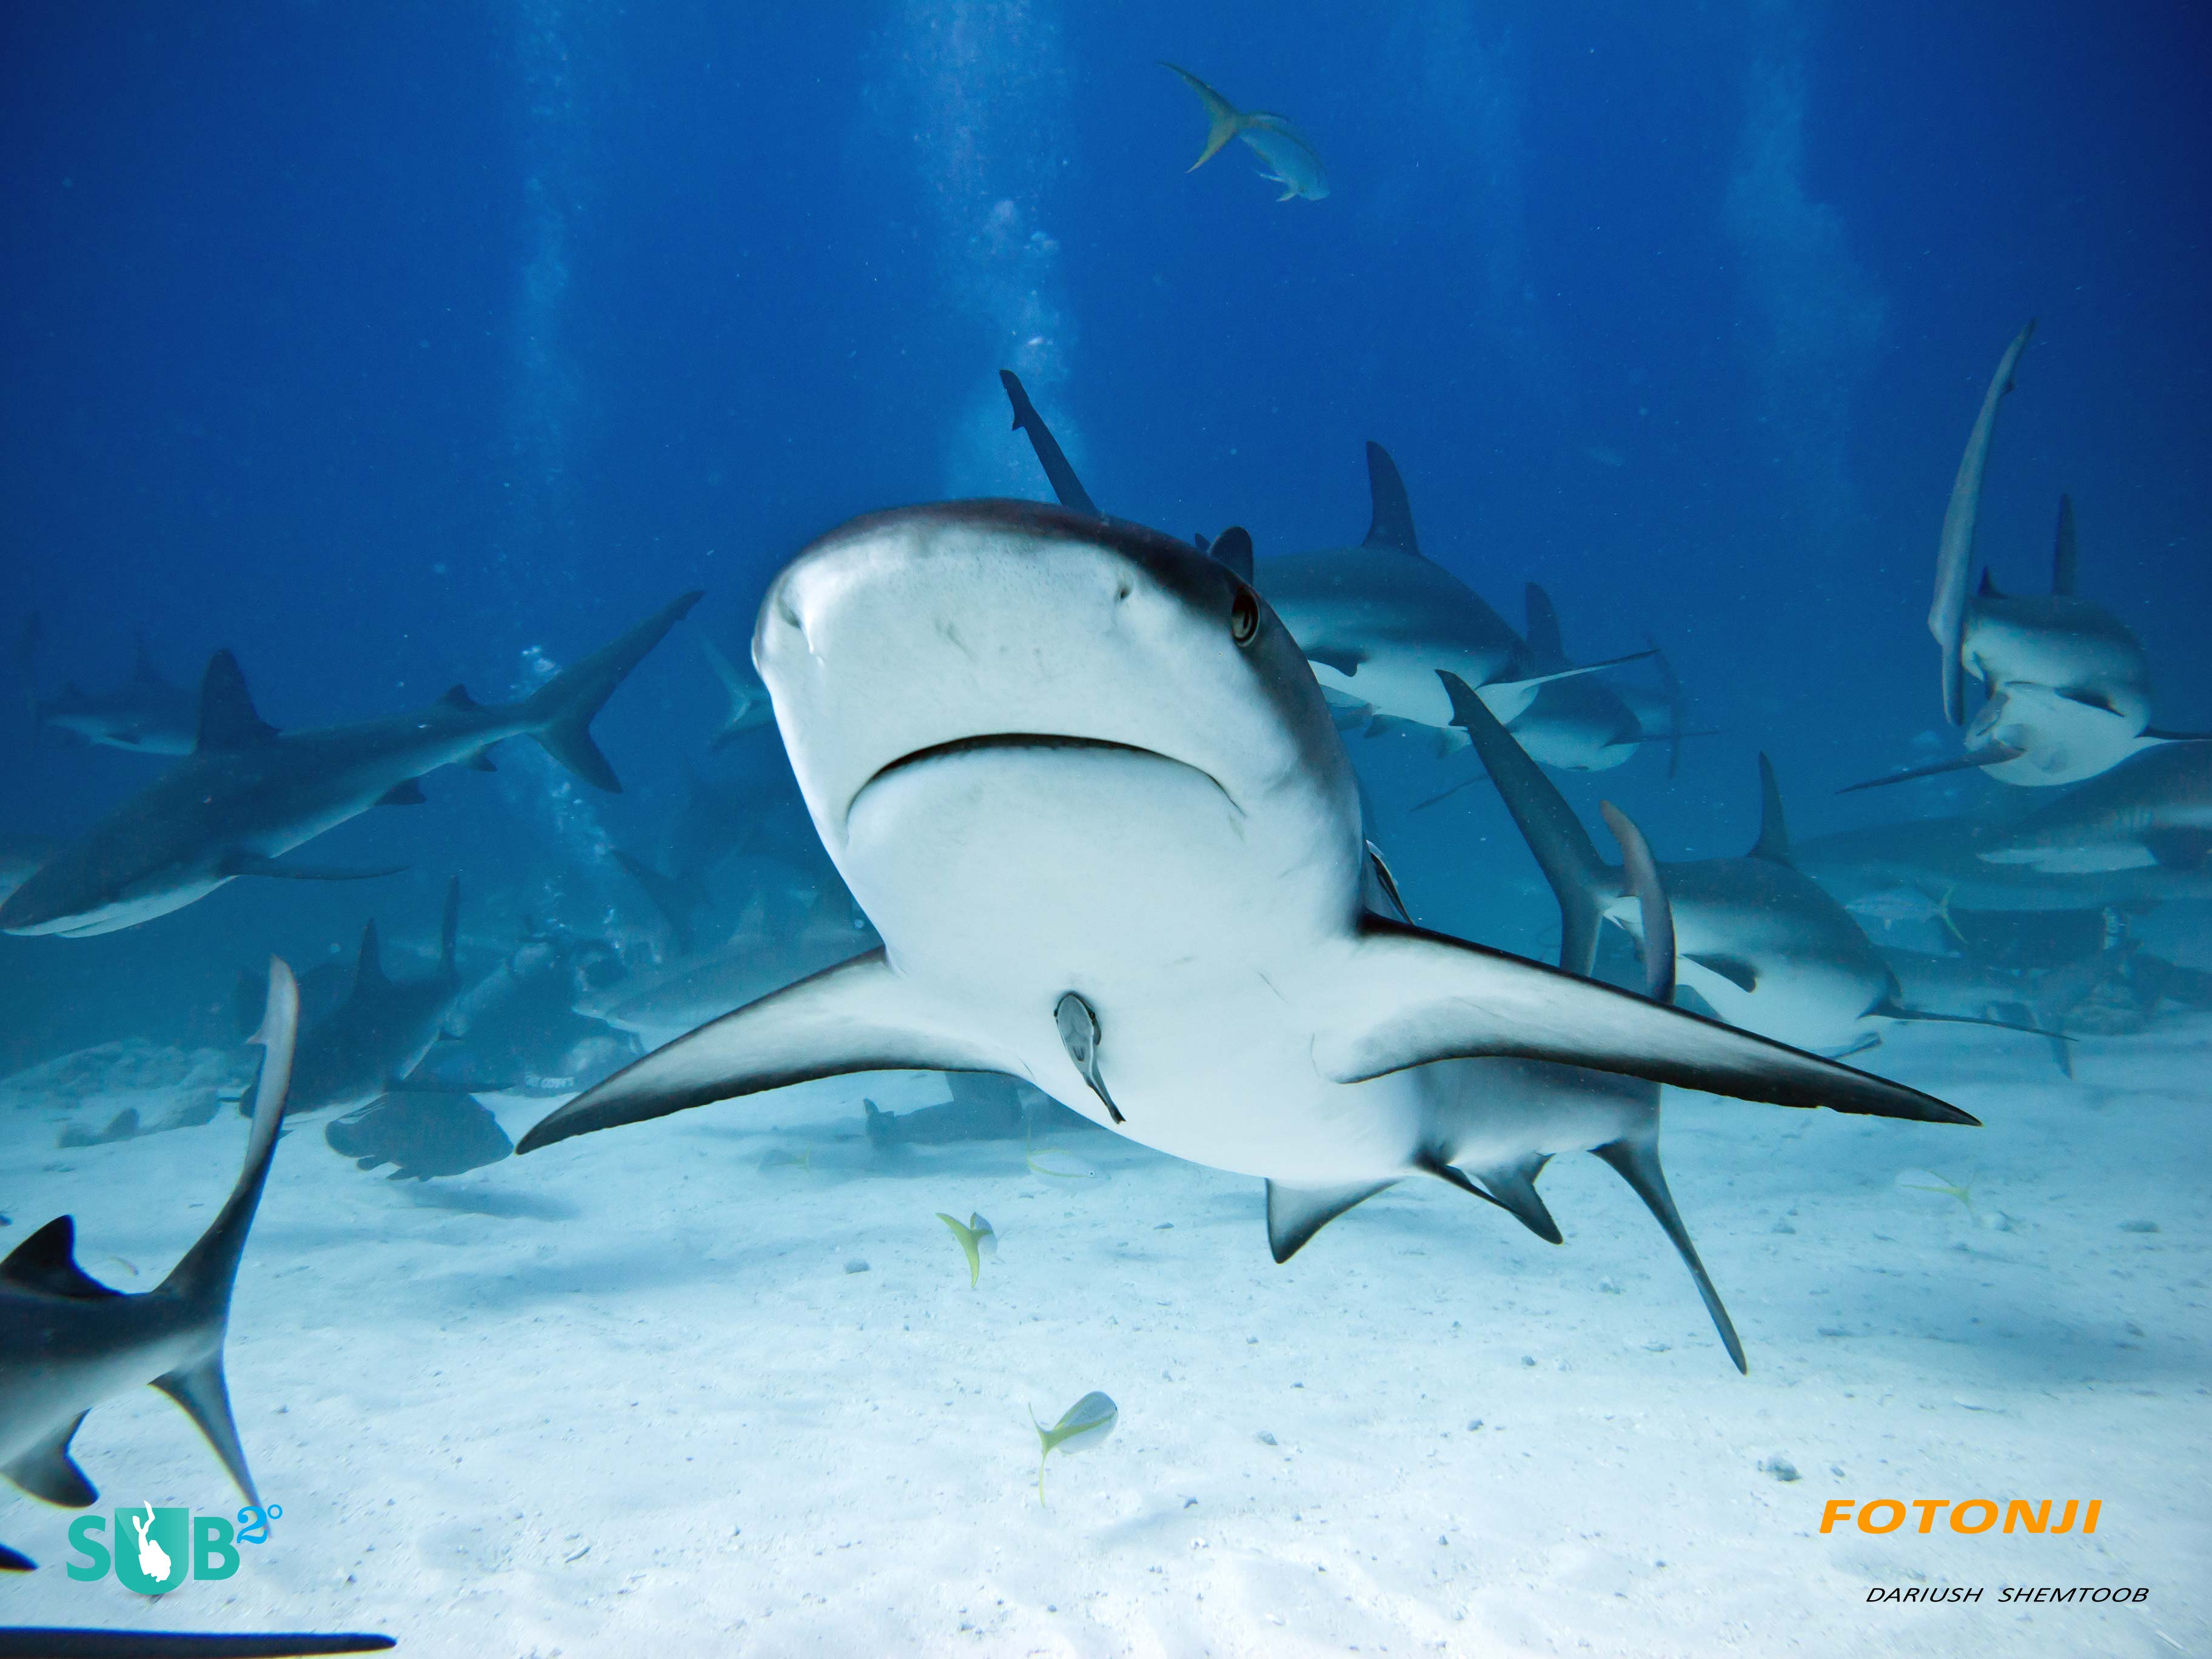 During the feeding frenzy, sharks pass overhead at great speeds.